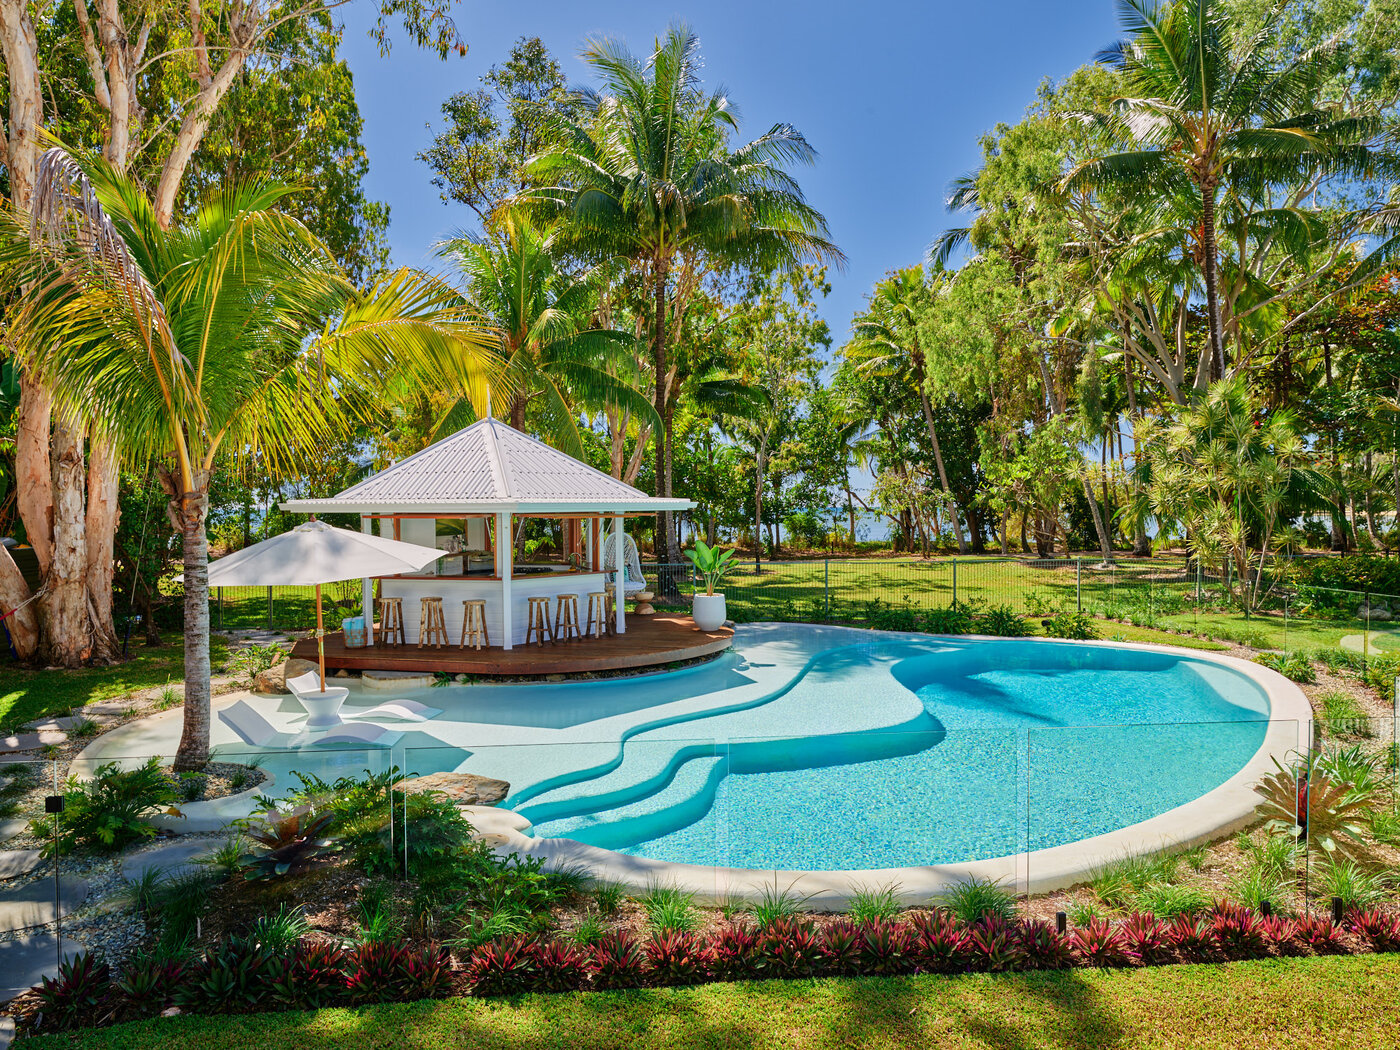 Custom Designed Resort Style Pool with Umbrella, pool chairs and palm trees